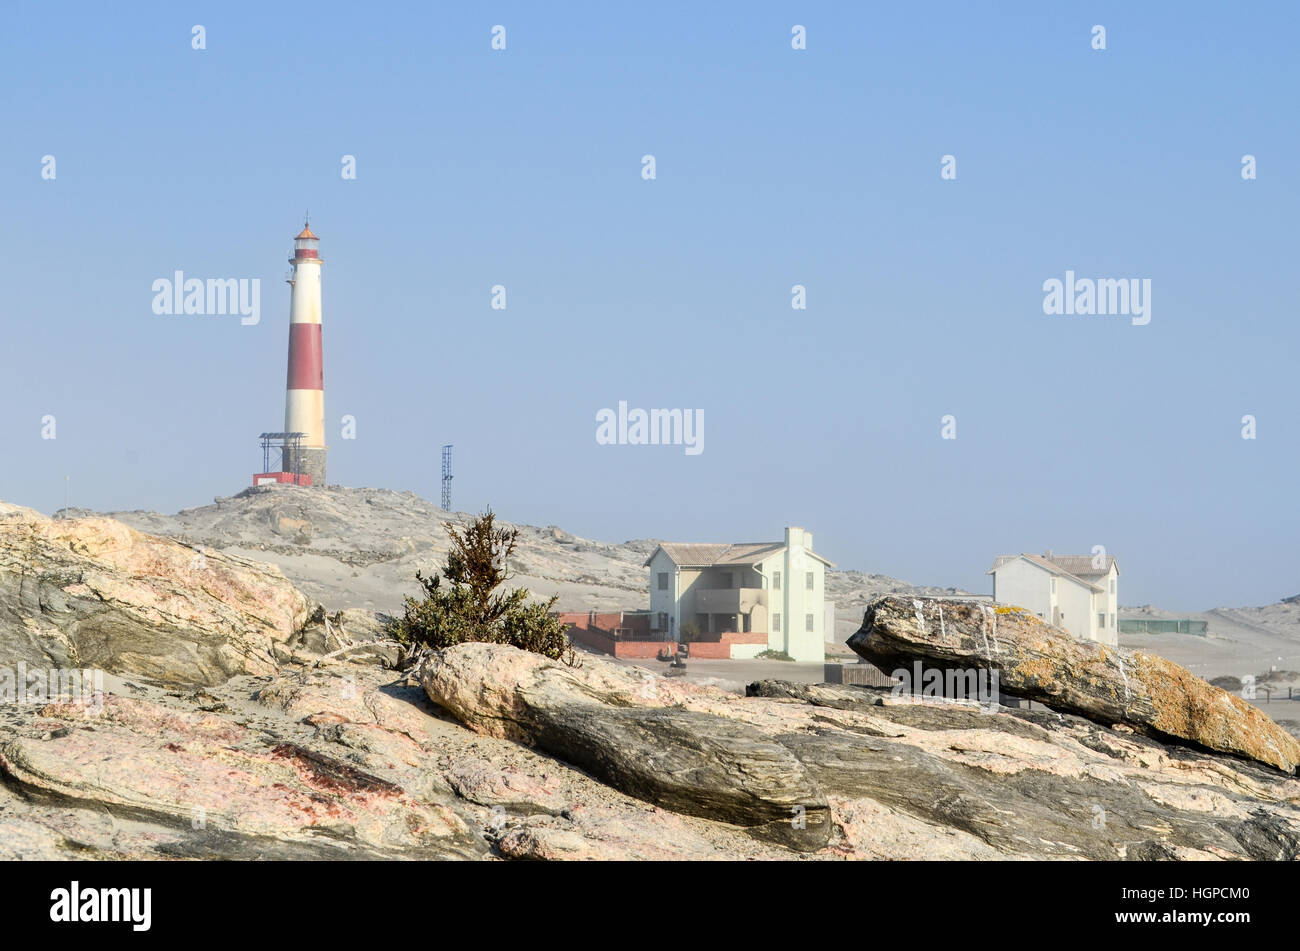 Lighthouse at Diaz Point, Luderitz, Namibia - Stock Image